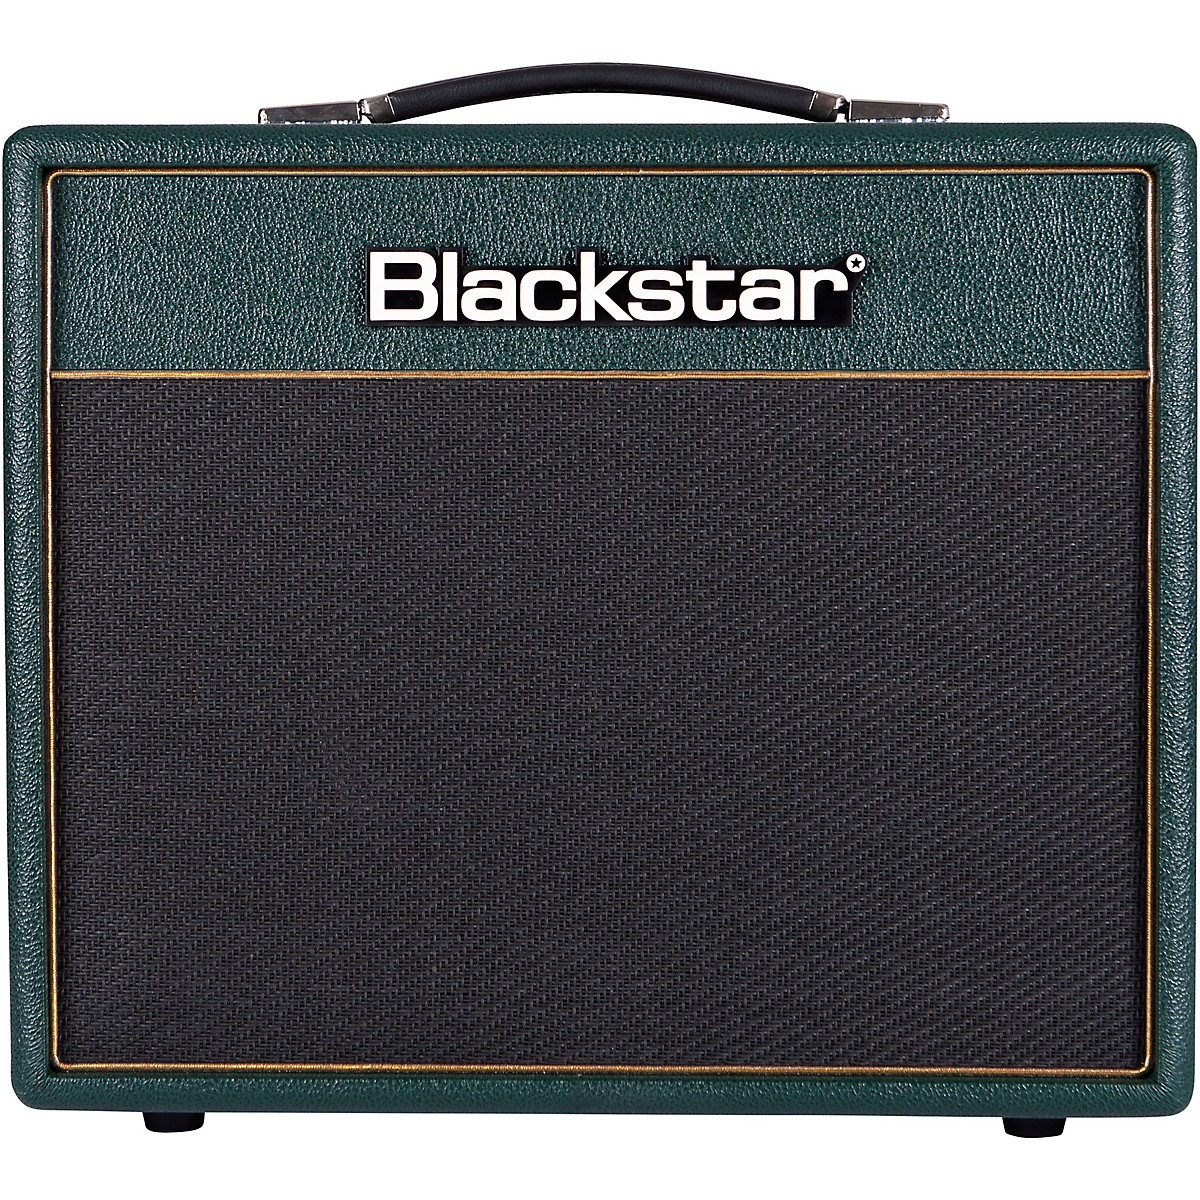 Blackstar Special Edition Studio 10 KT88 10W 1x12 Tube Guitar Amp Combo